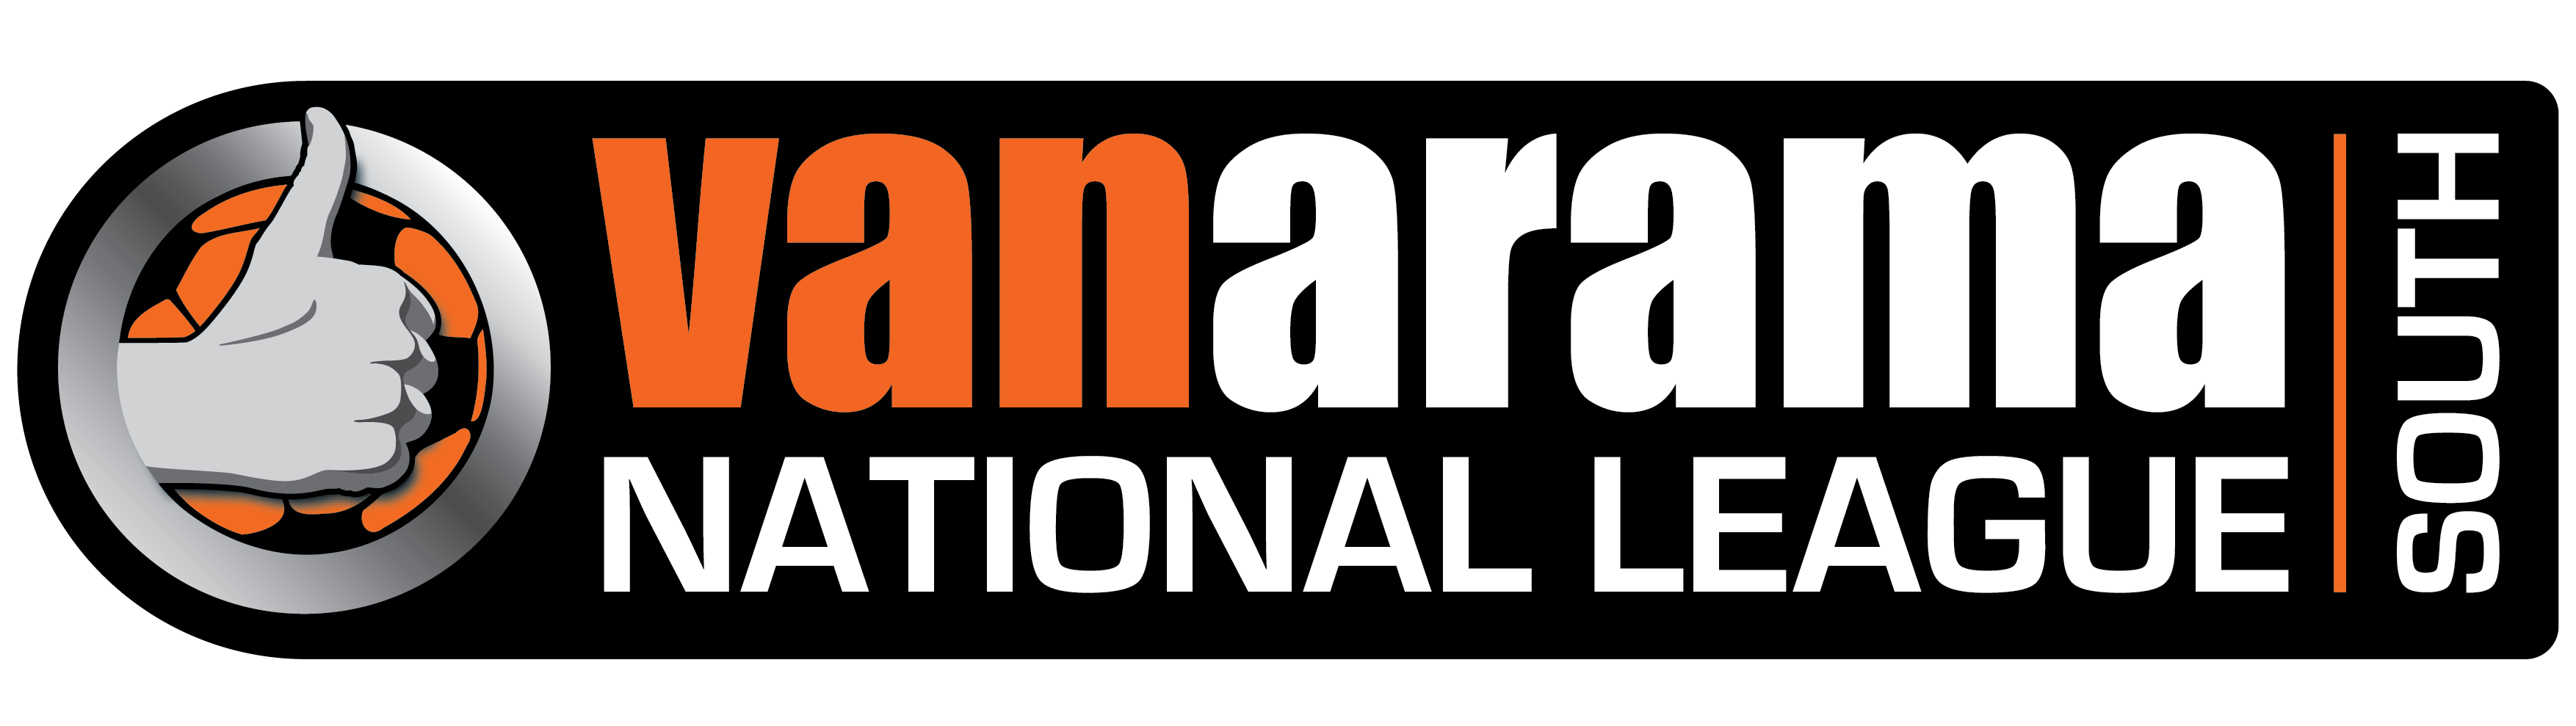 http://vignette1.wikia.nocookie.net/logopedia/images/8/85/Vanarama_National_League_South_logo.png/revision/latest?cb=20151114212932